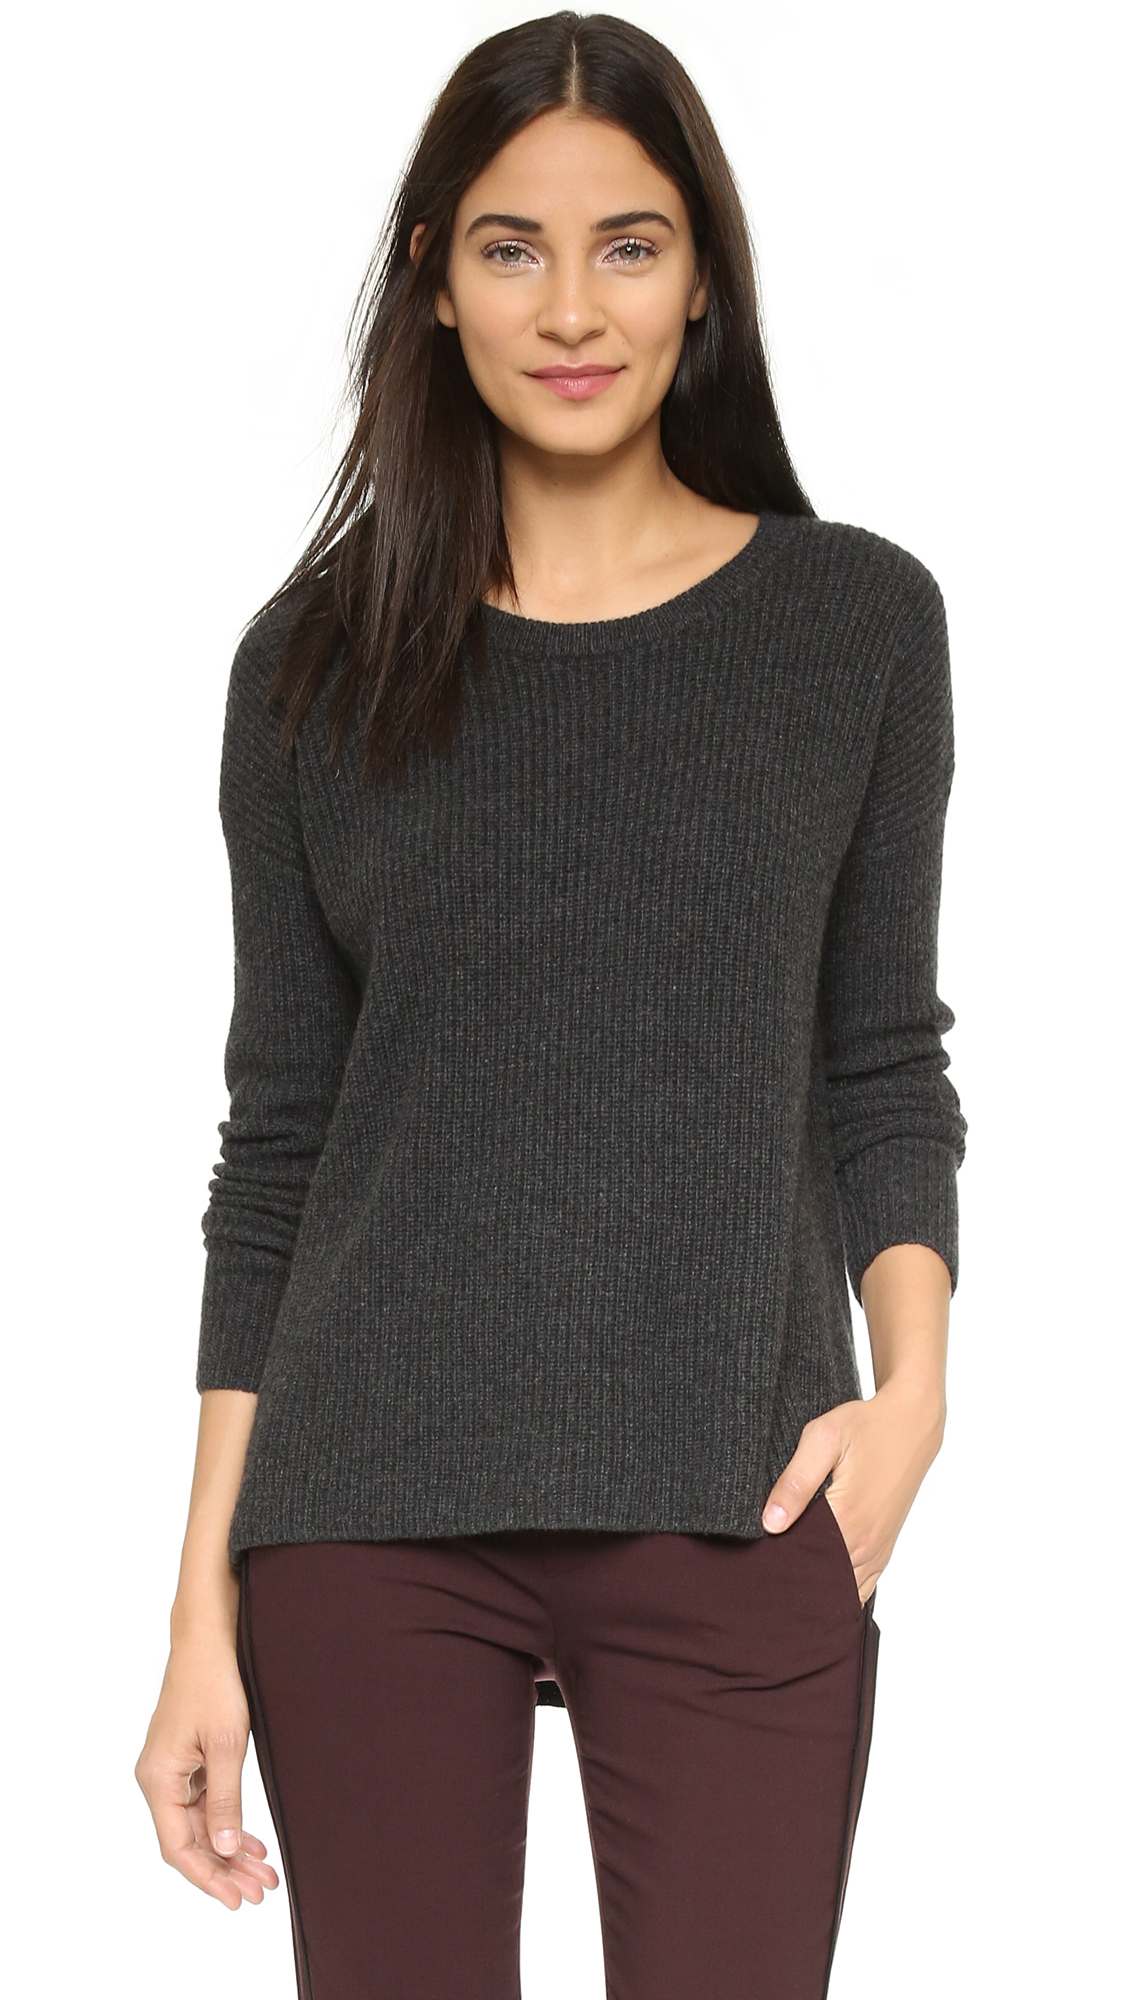 Vince Ribbed Cashmere Sweater - Wisteria in Black | Lyst